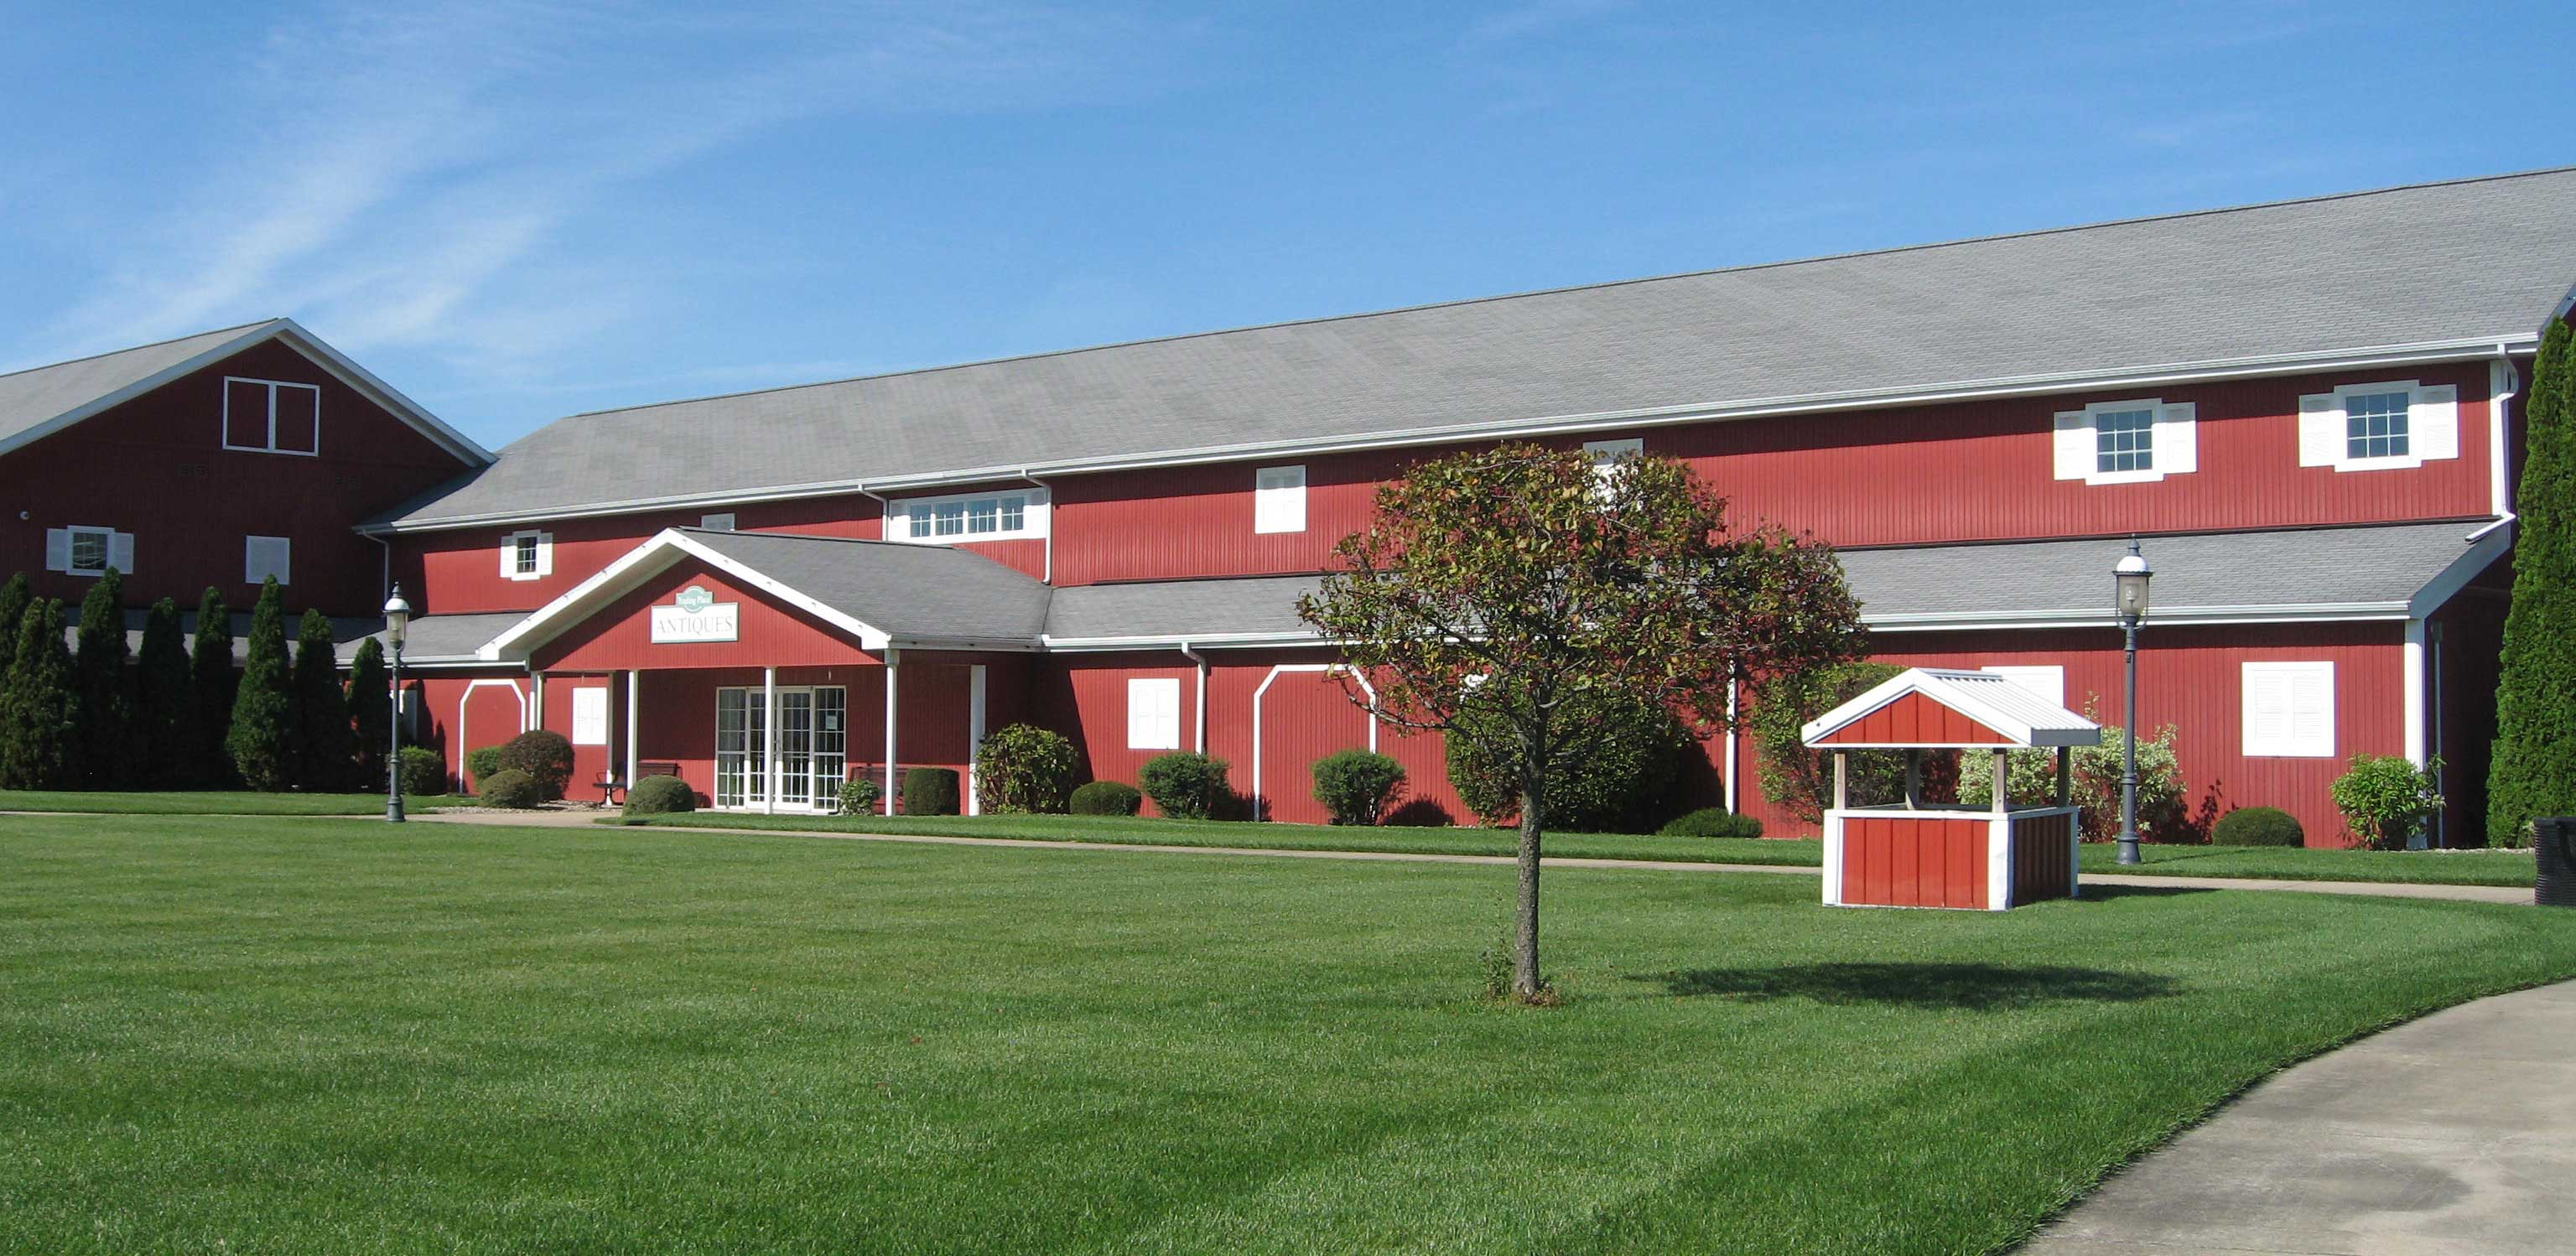 Farmstead Expo Barn event venue in Shipshewana